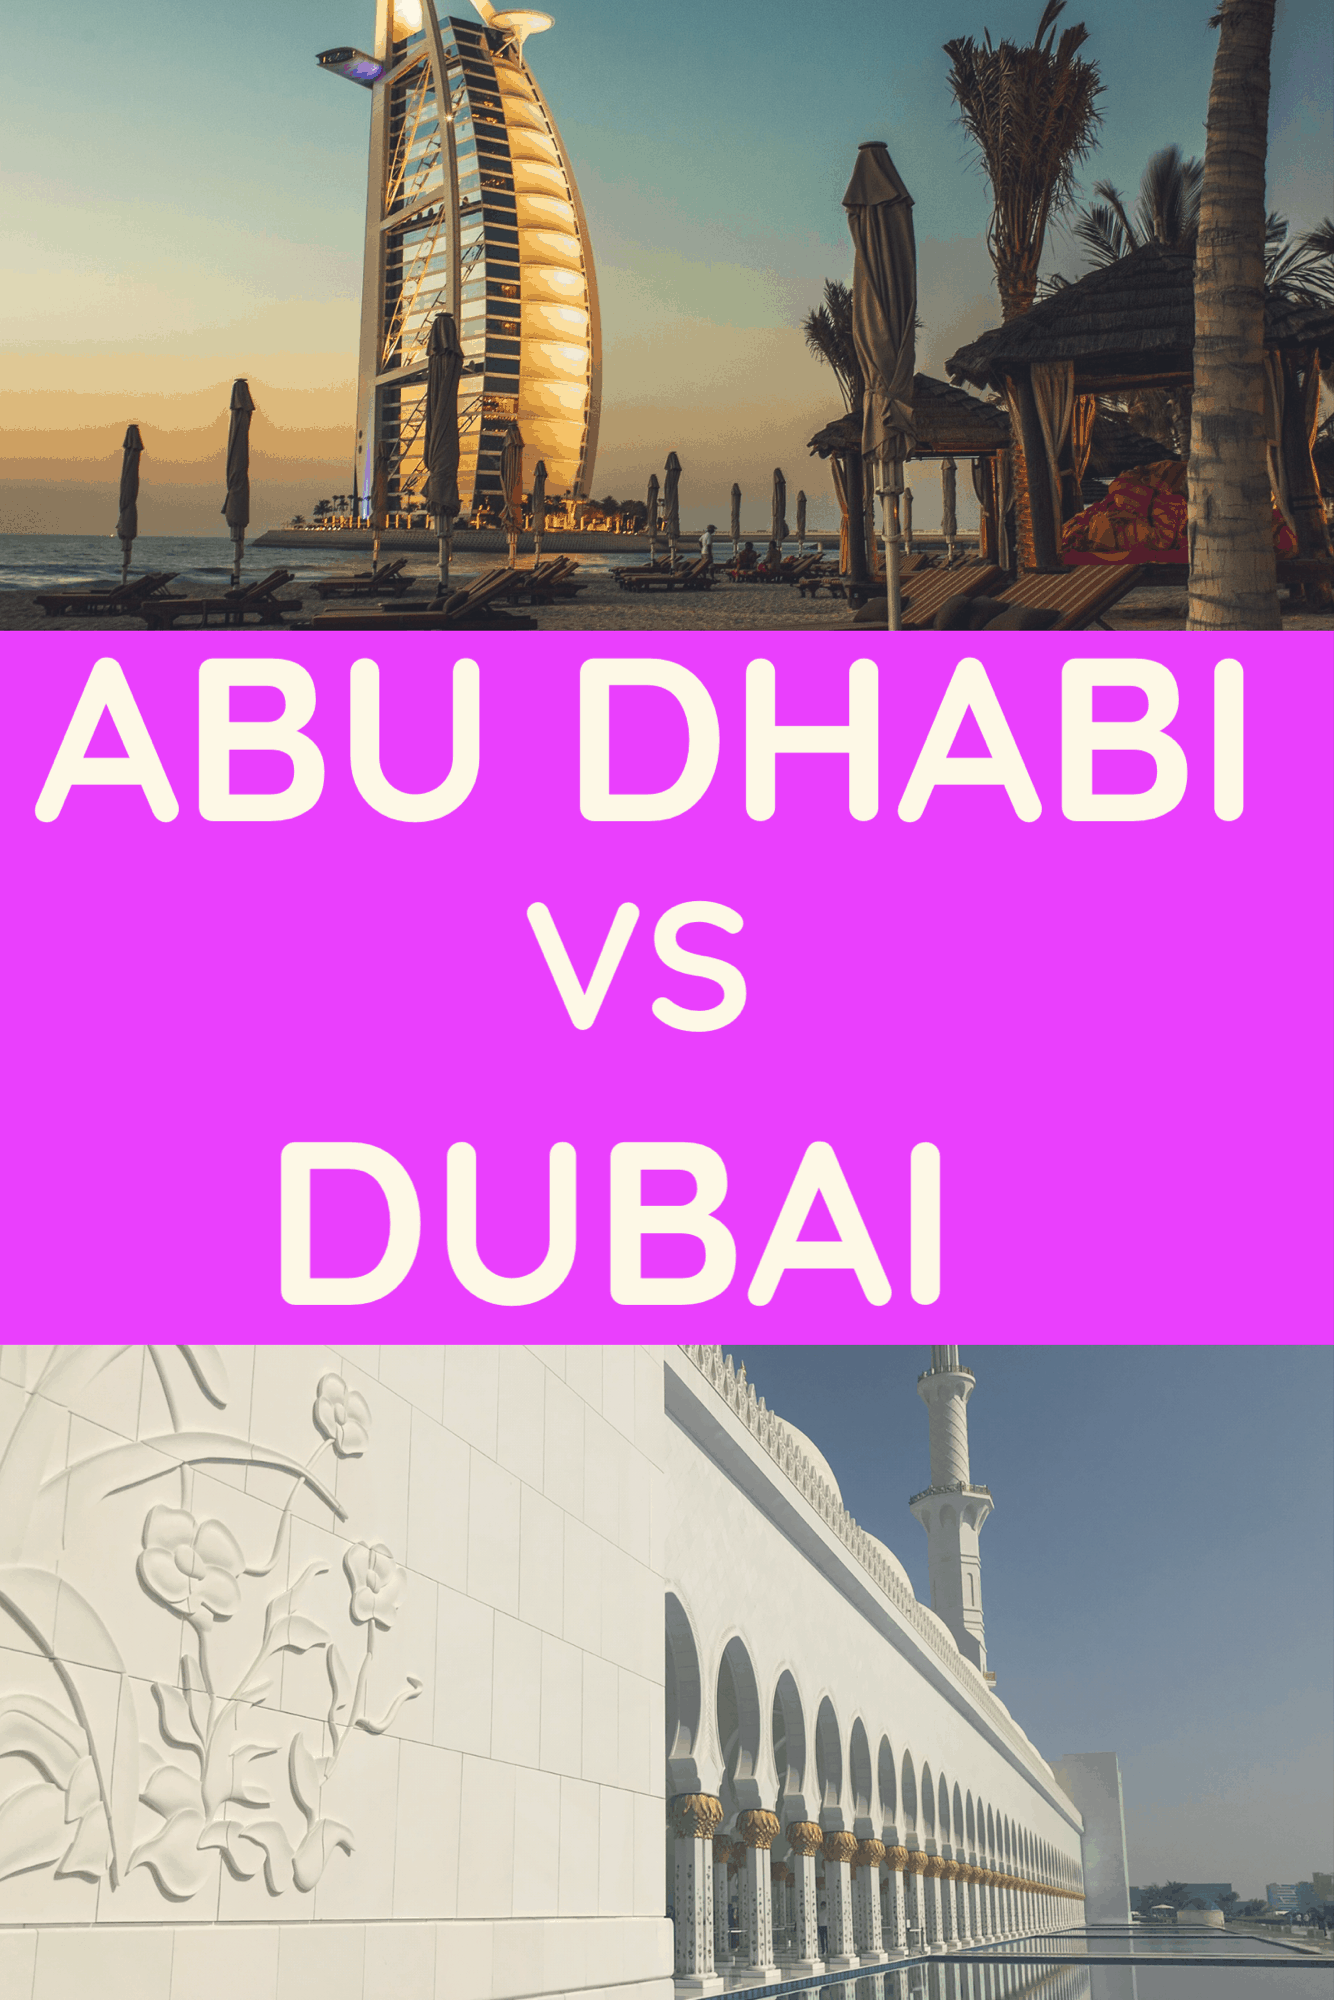 Abu Dhabi Vs Dubai - Dubai Vs Abu Dhabi - what is the best UAE holiday? UAE travel - #uaetravel #dubai #abudhabi #dubaitravel #abudhabitravel #abudhabivsdubai